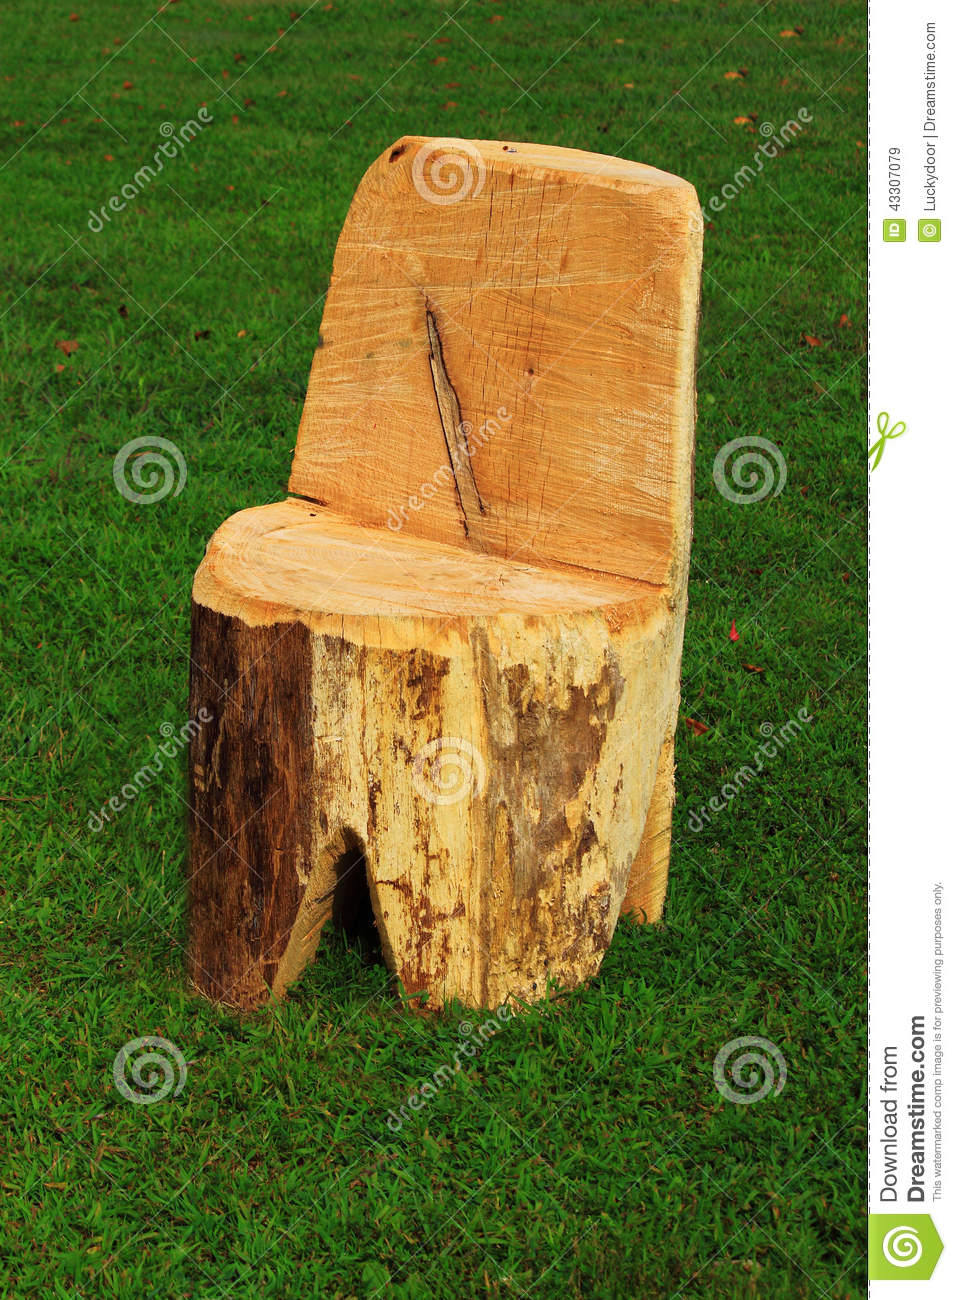 log chair stock image image of save whole tree piece 43307079. Black Bedroom Furniture Sets. Home Design Ideas